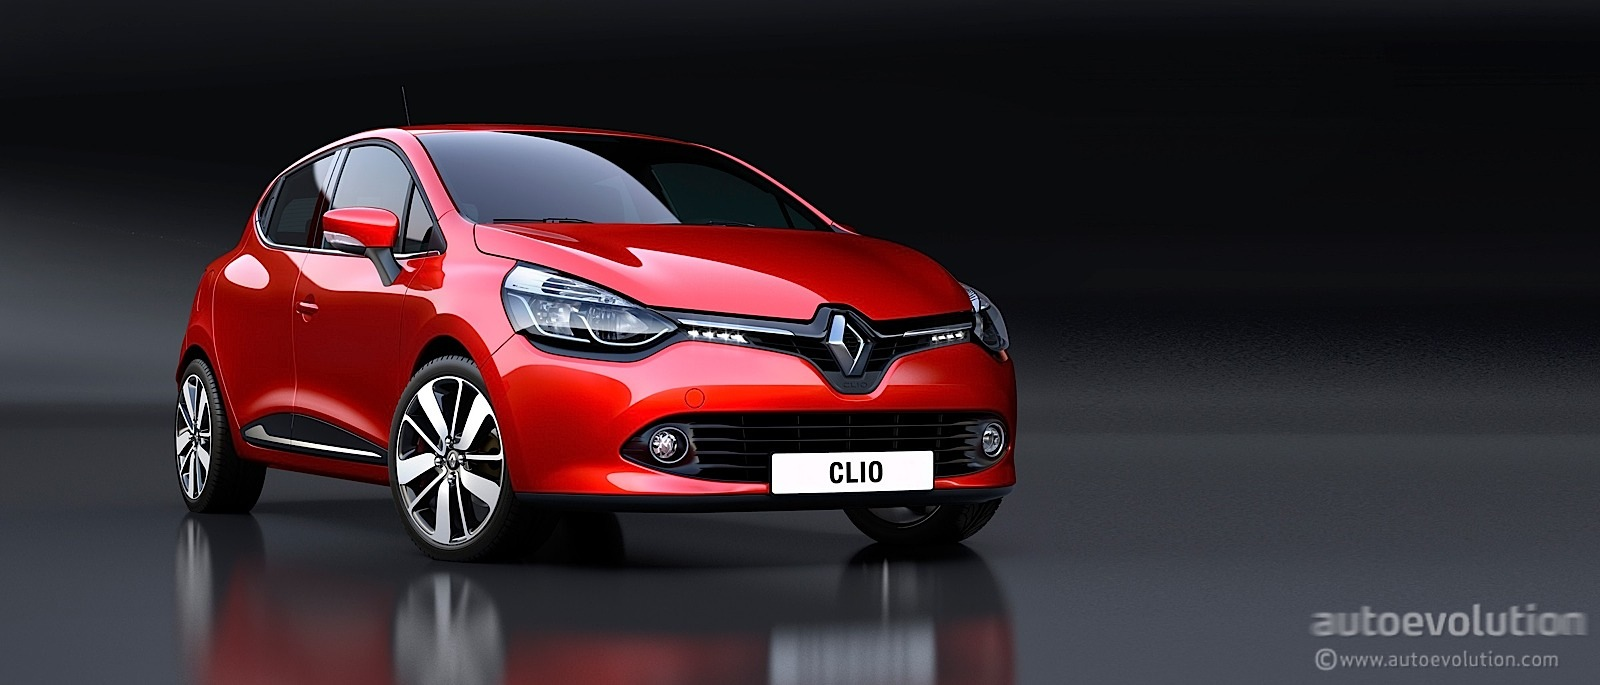 new renault clio officially revealed autoevolution. Black Bedroom Furniture Sets. Home Design Ideas